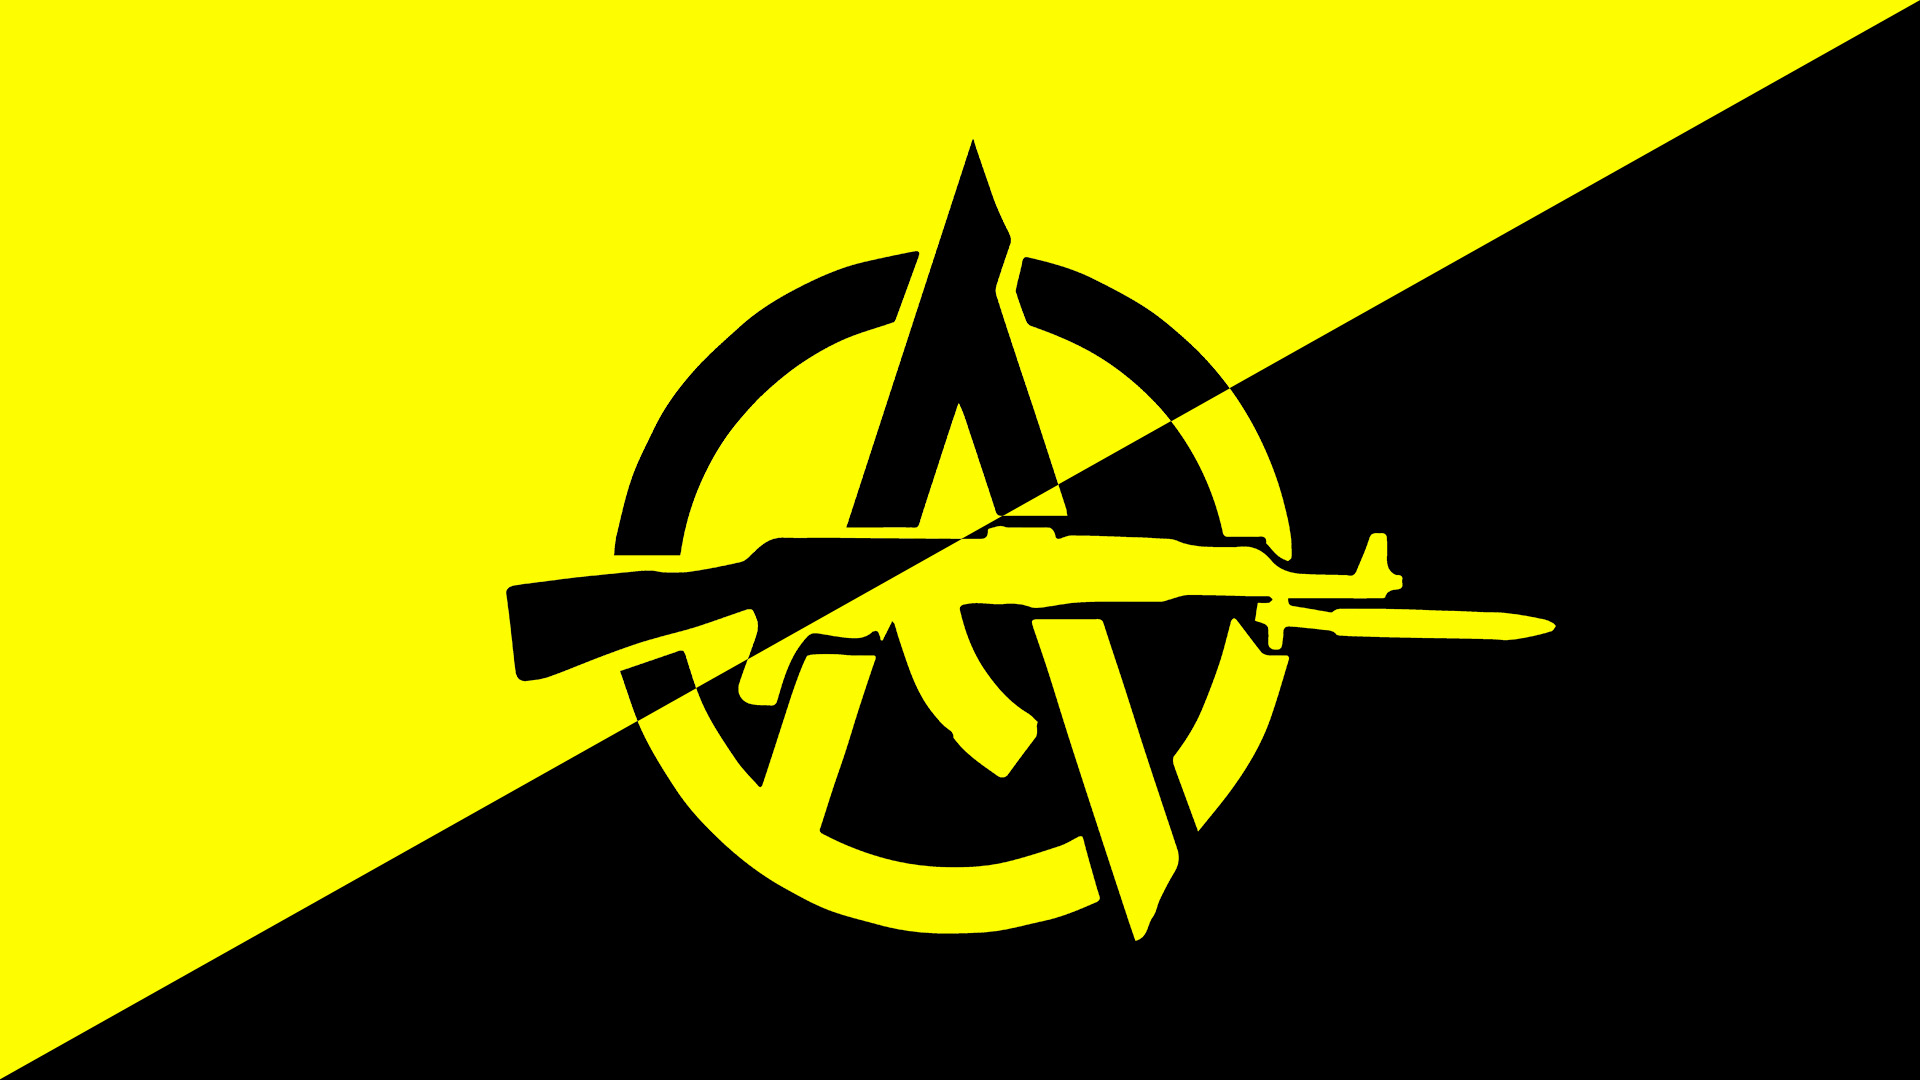 anarcho communist wallpapers - photo #19